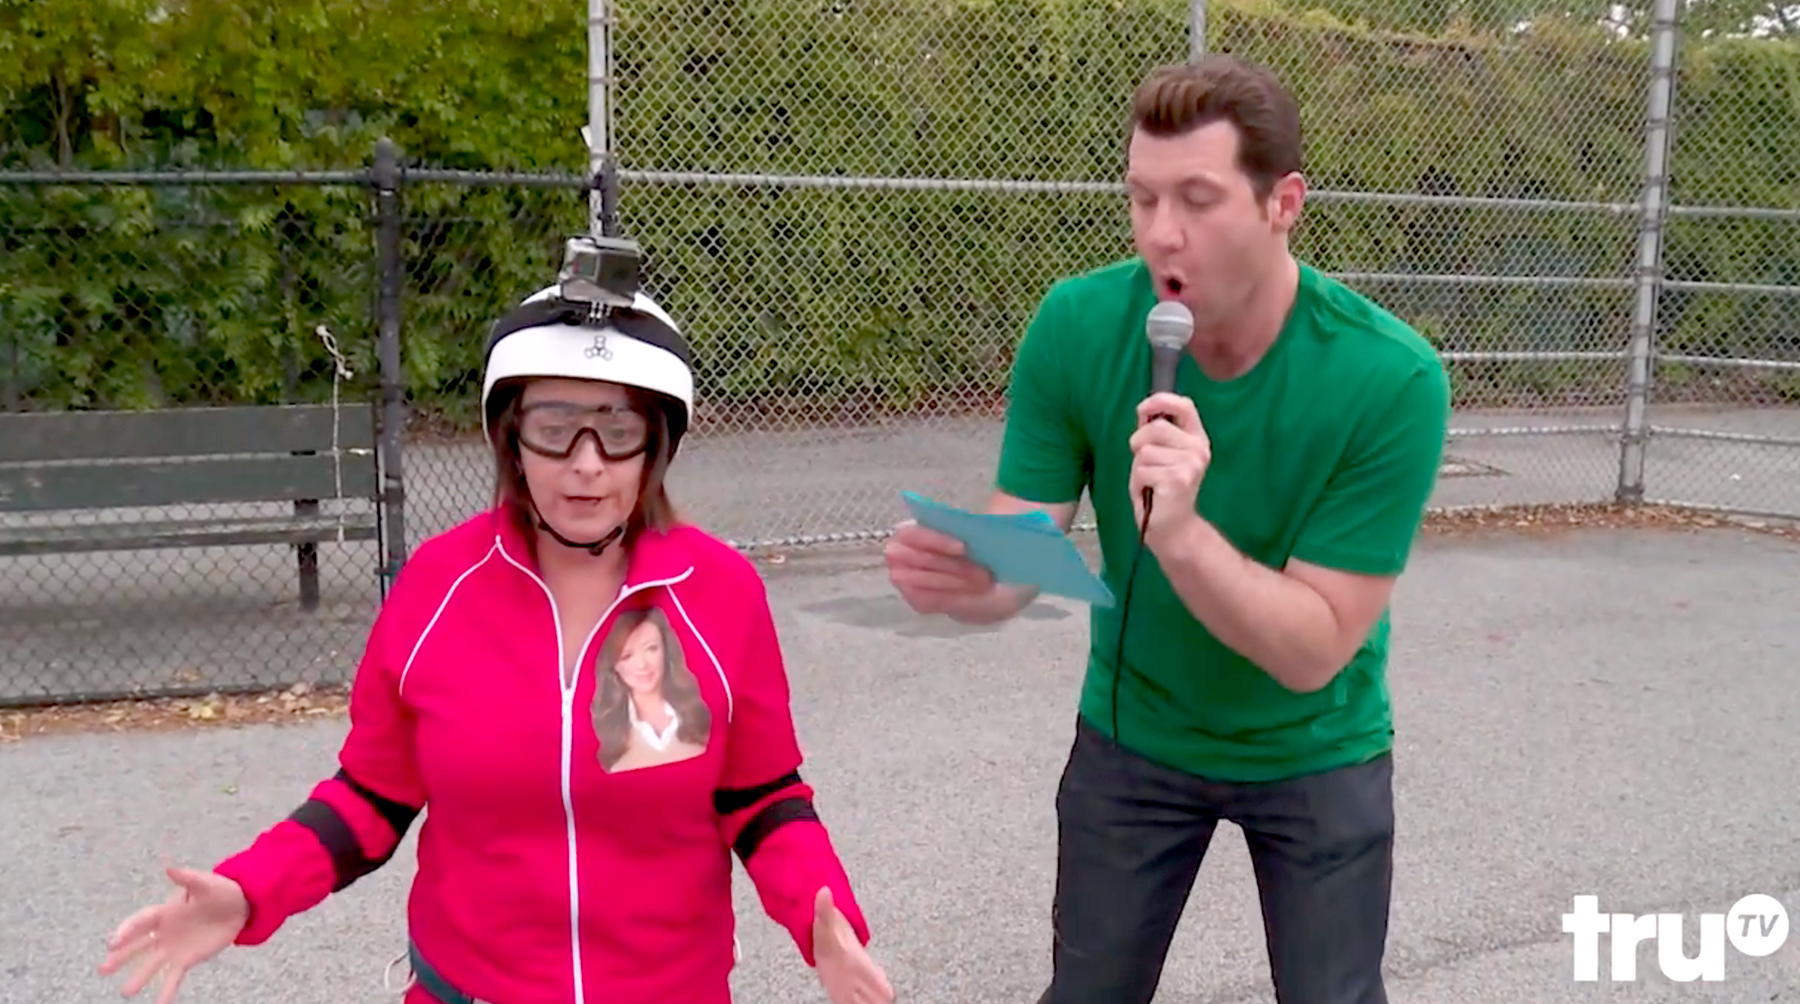 Leah Remini's Escape from Scientology features Rachel Dratch as Remini, making her way through a goofy course with Billy Eichner.